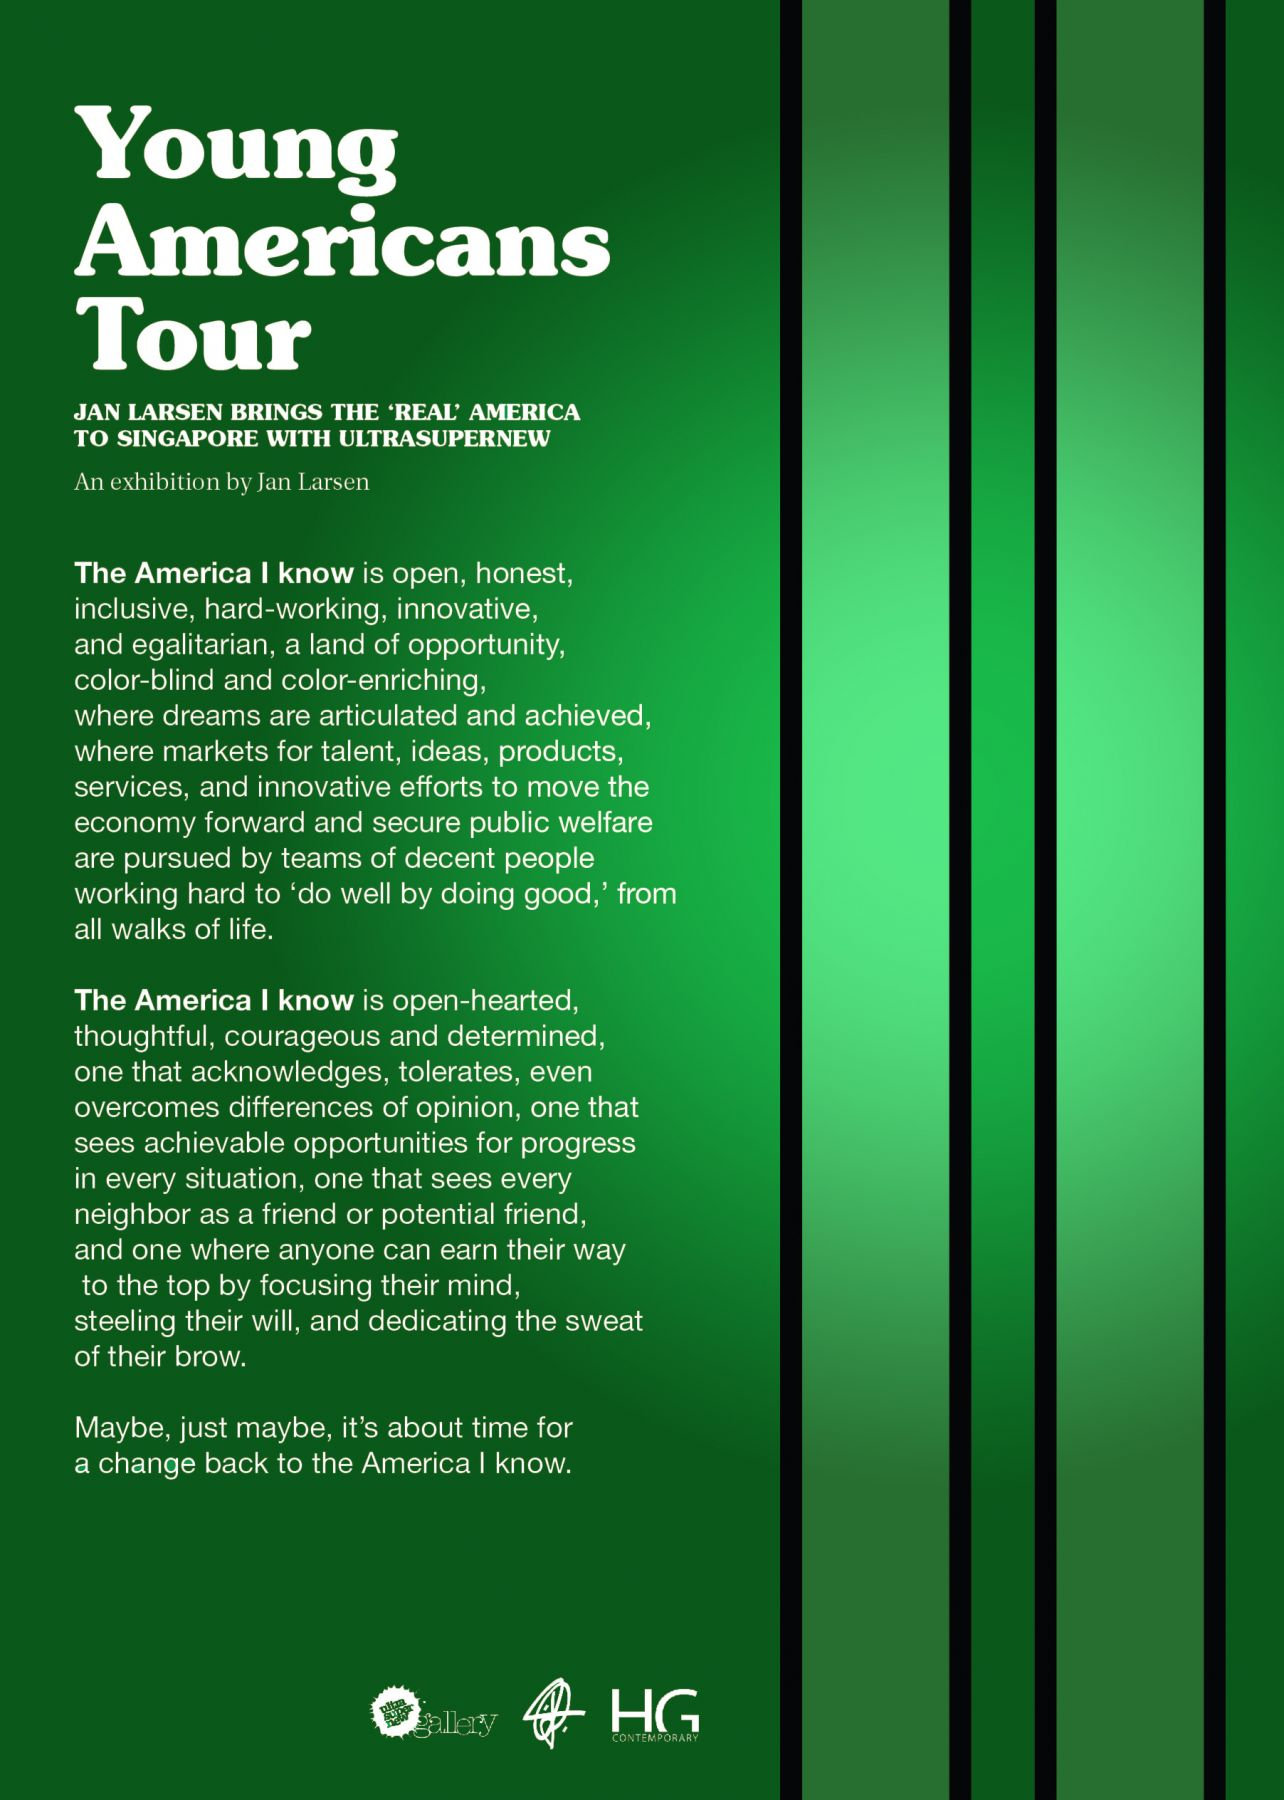 Young Americans Tour Poster at Hg Contemporary